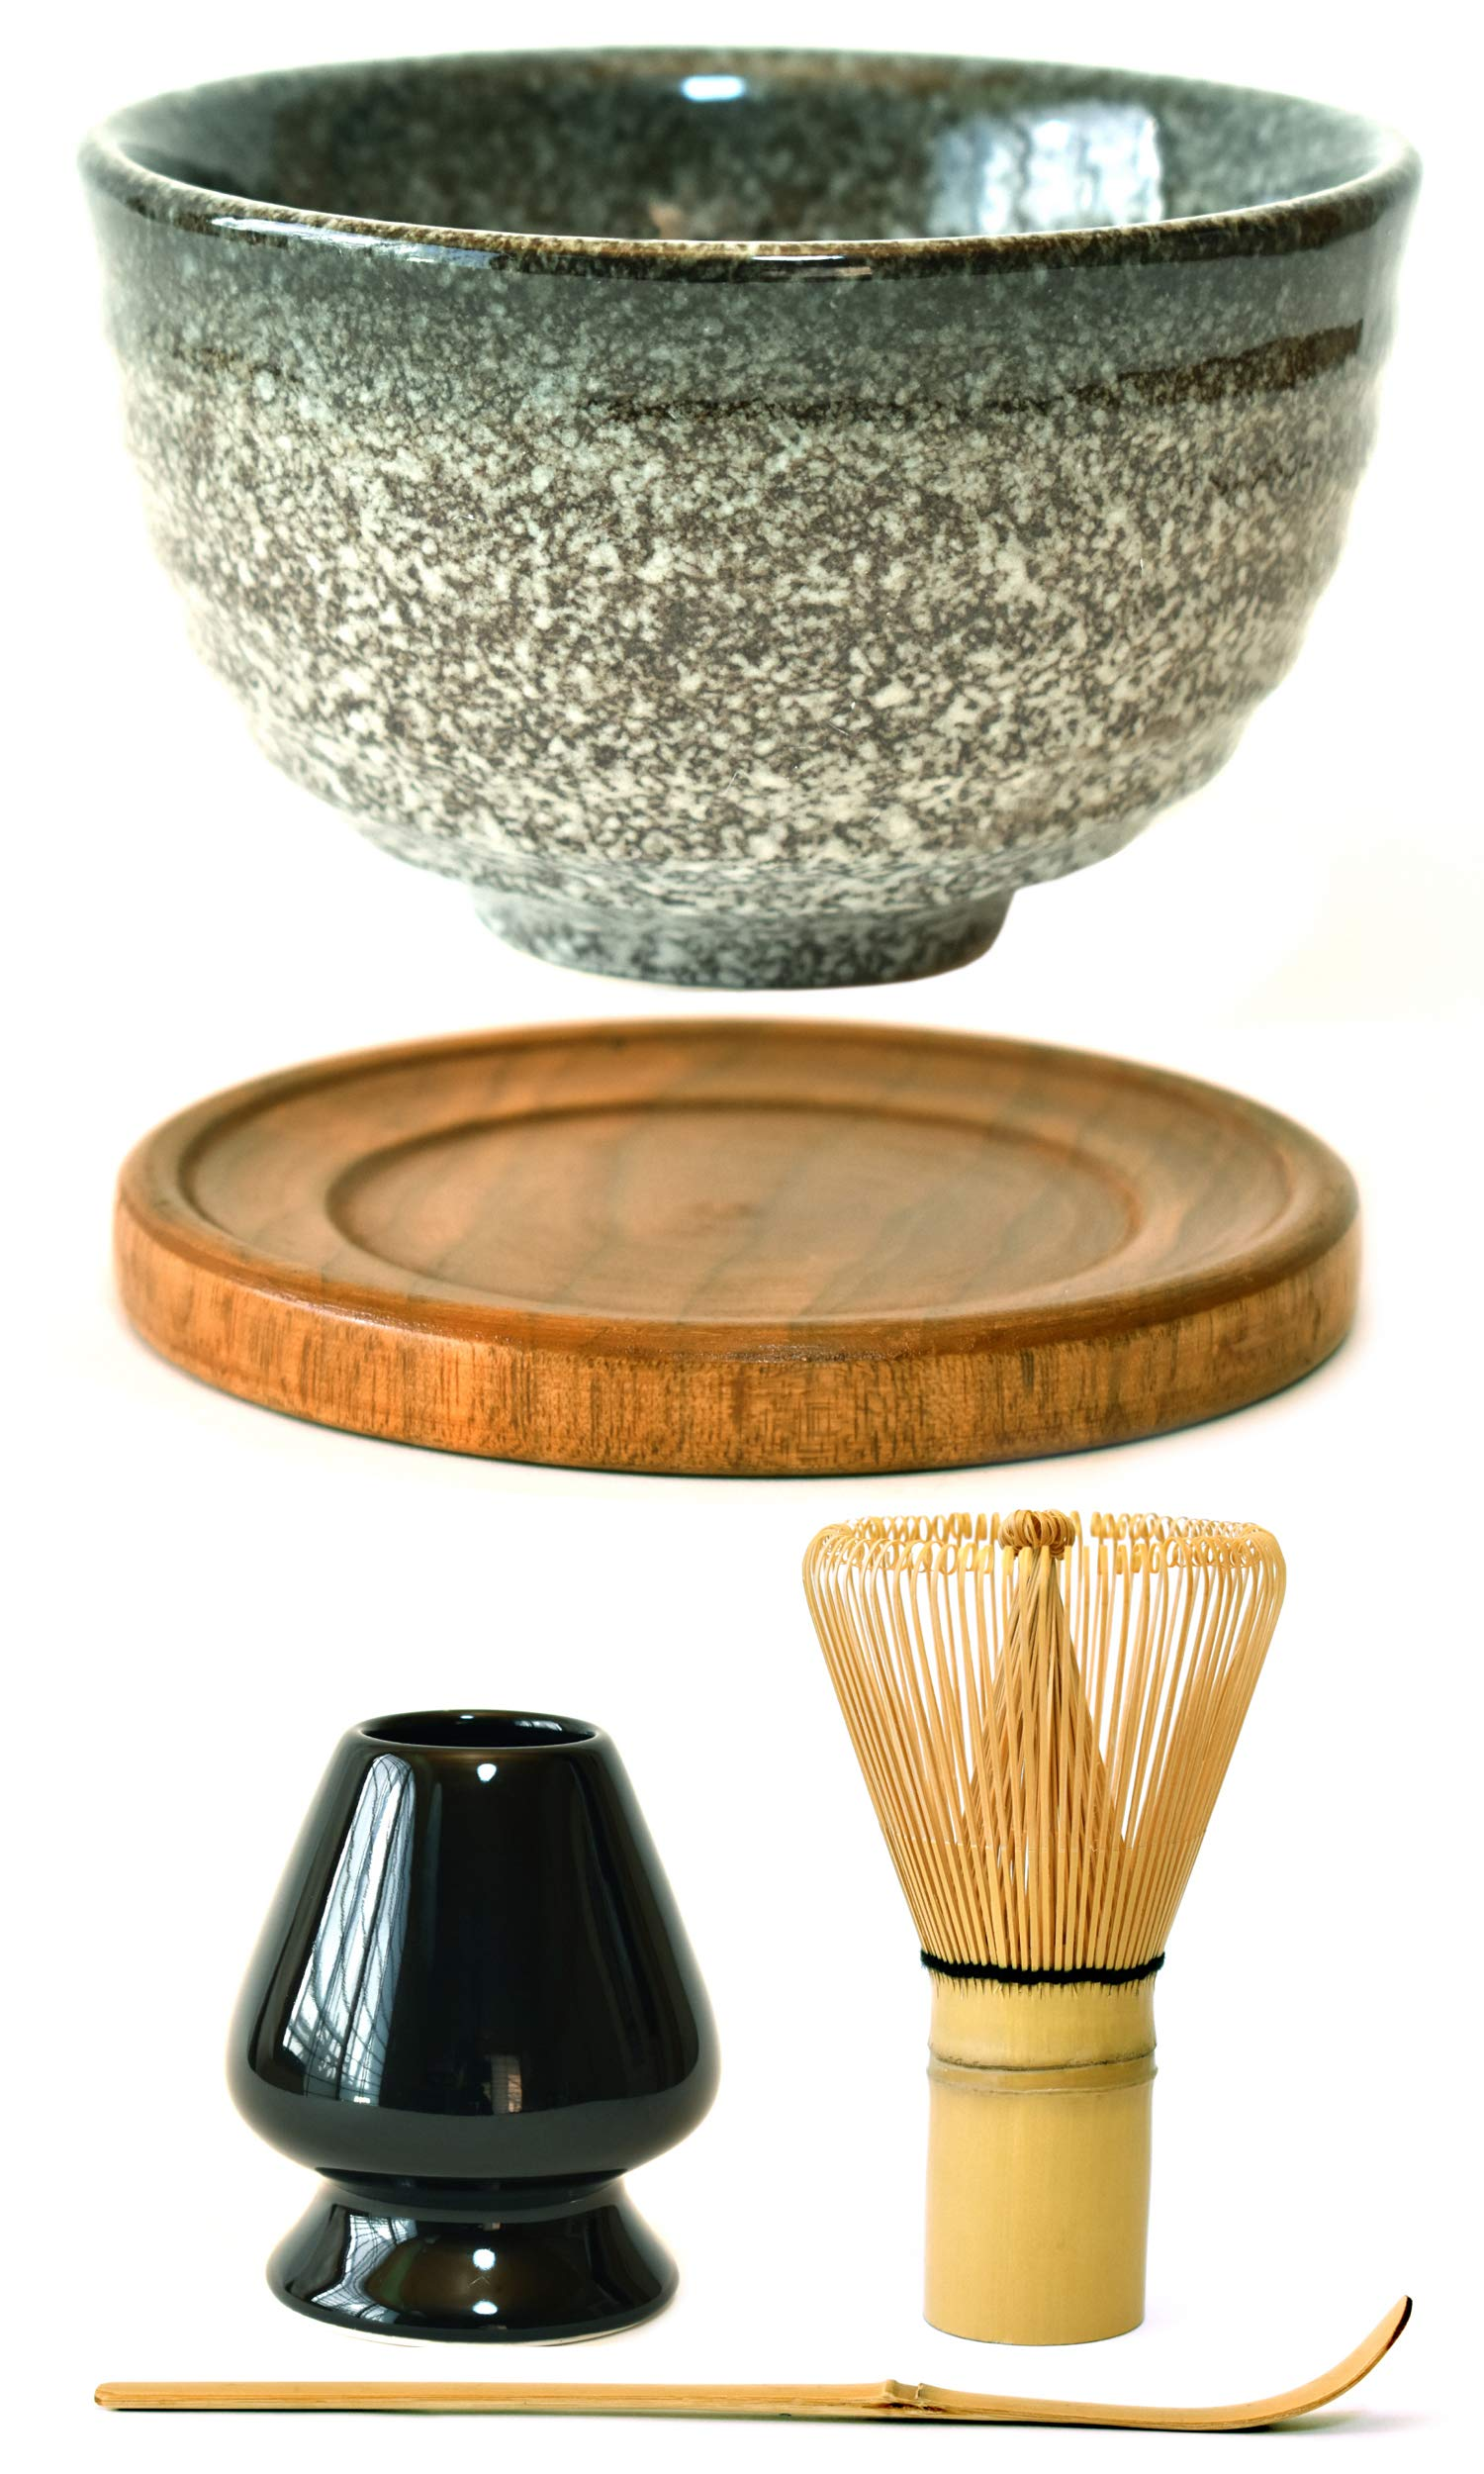 Premium Japanese Ceremonial Matcha Green Tea Chawan Bowl Full Kit Set with Accessories and Tools Bamboo Chasen Matcha Whisk Scoop and Holder (Speckled Dark Grey) by APEX S.K.